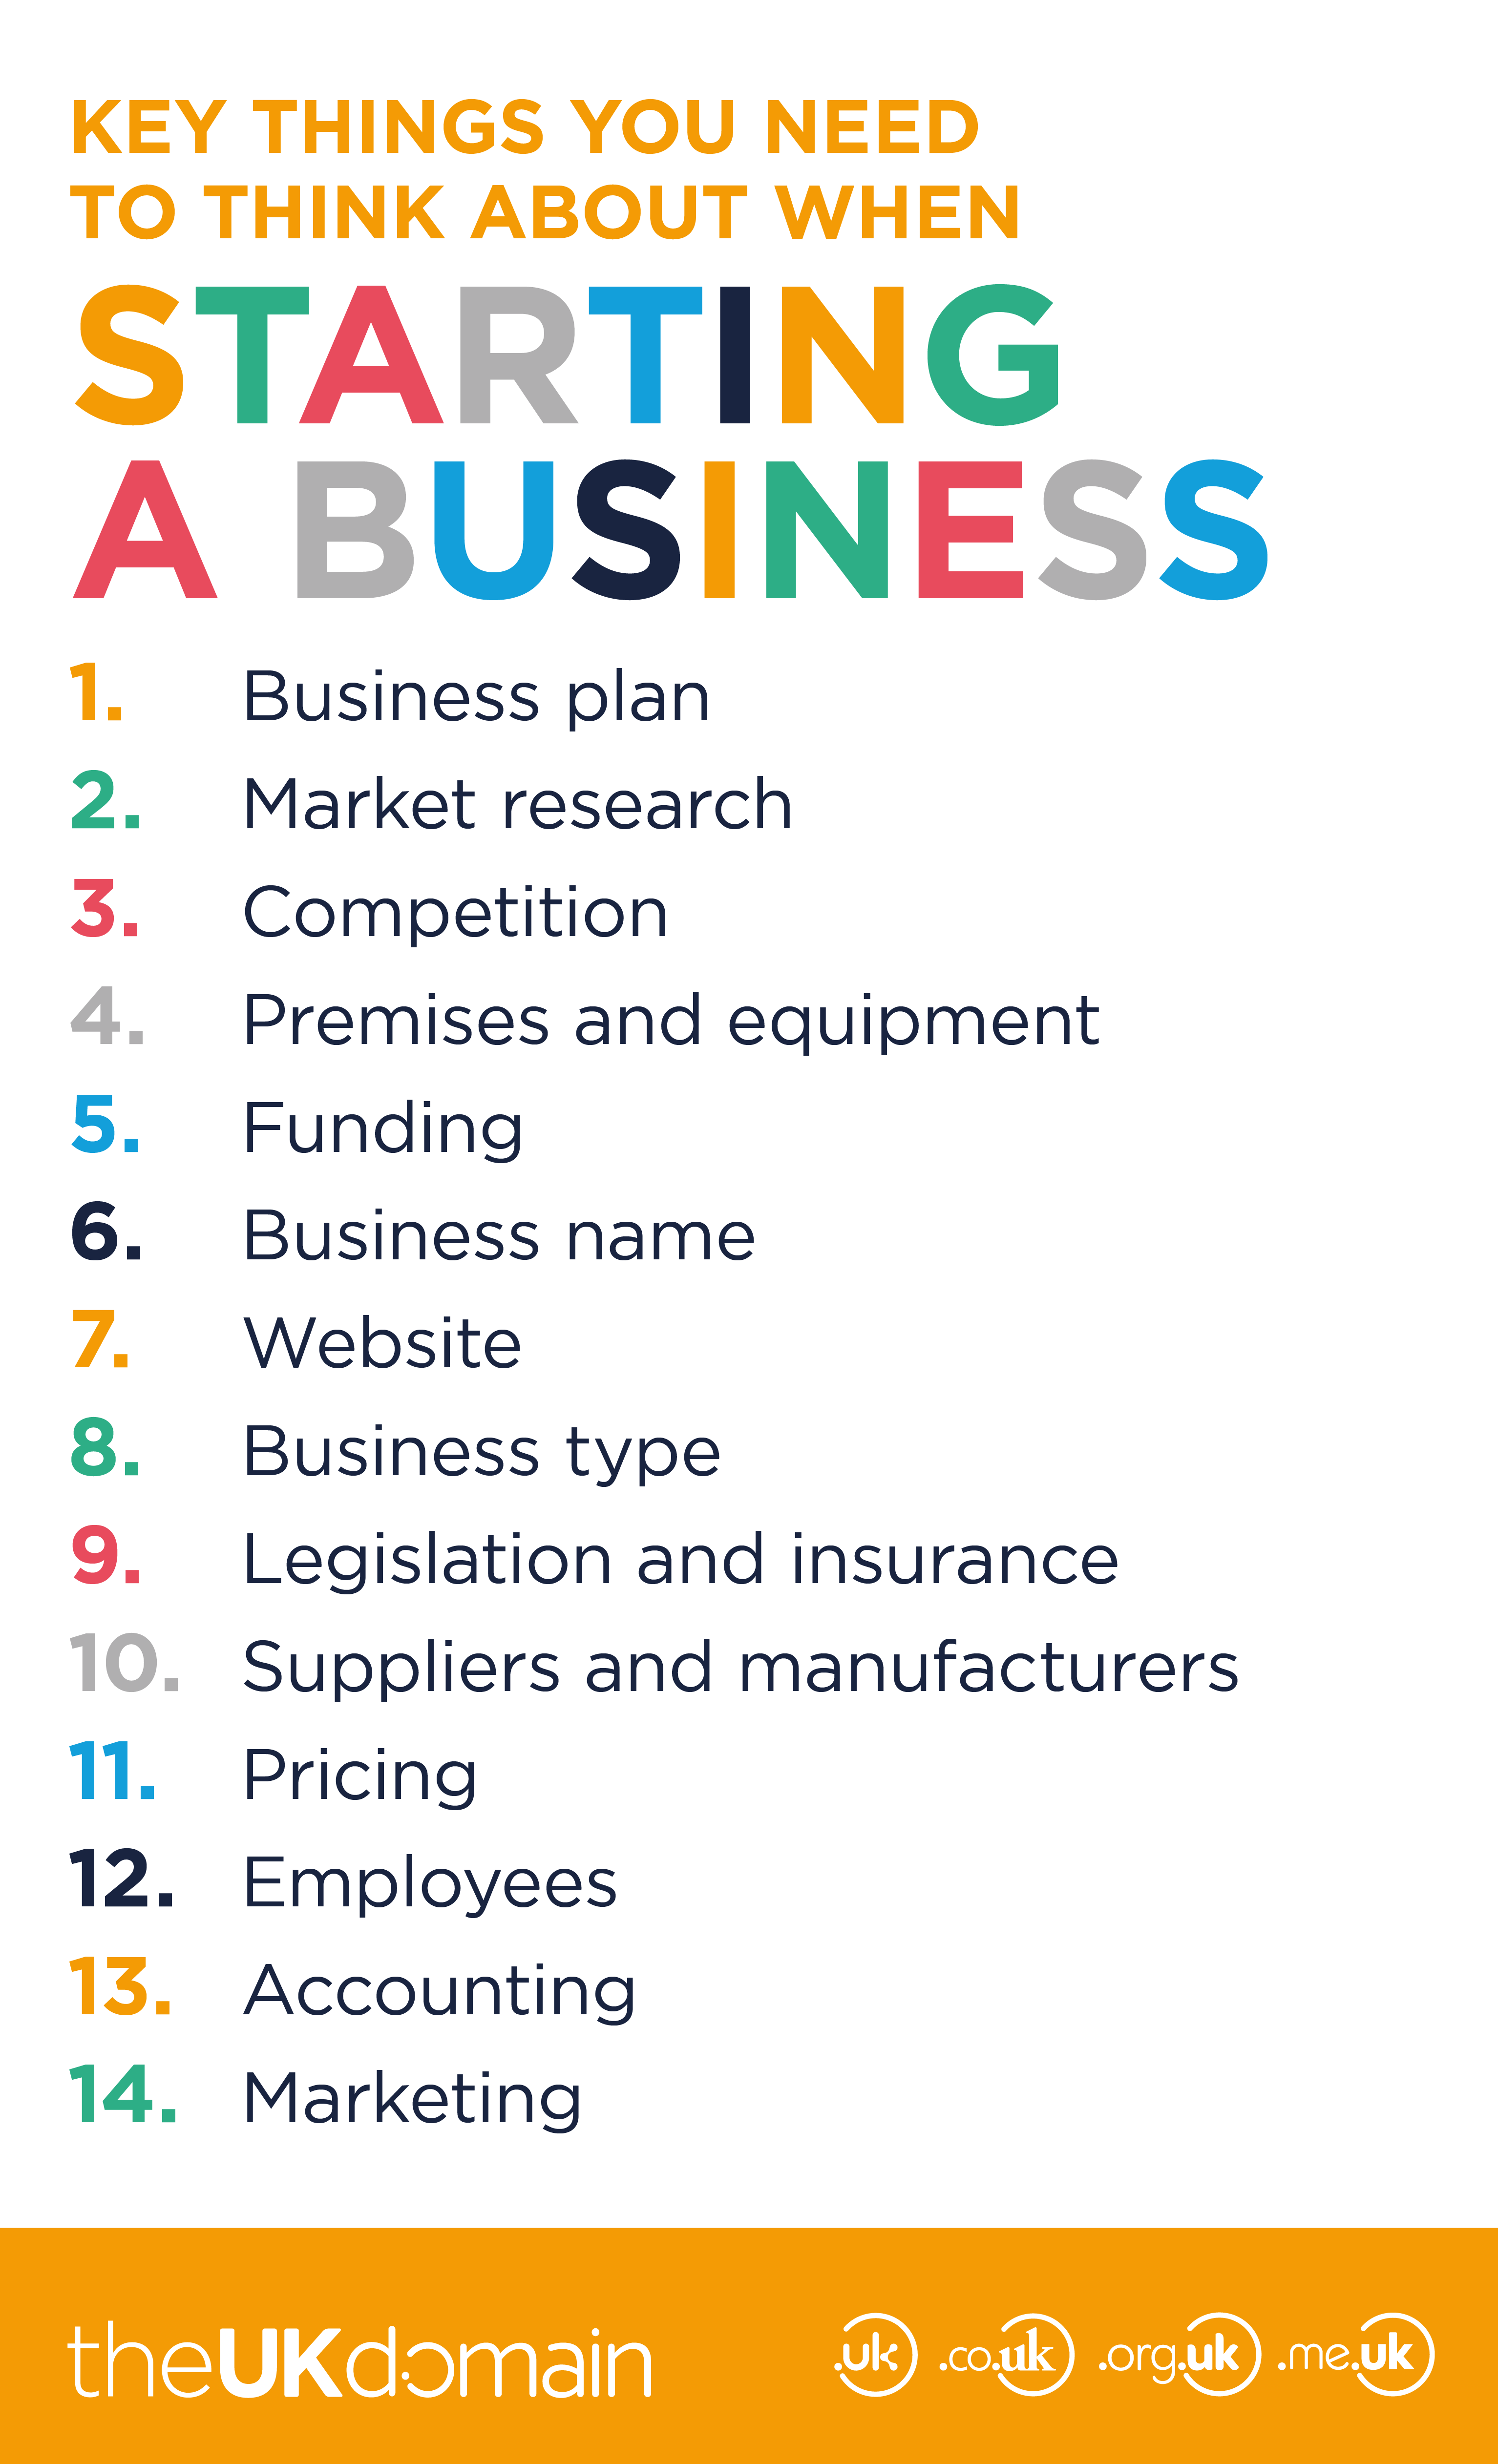 Get Your Small Business Off To A Great Start If Youre Ready To Turn That Business Idea Into A Reality Click Visit To Read About Some Of The Key Things